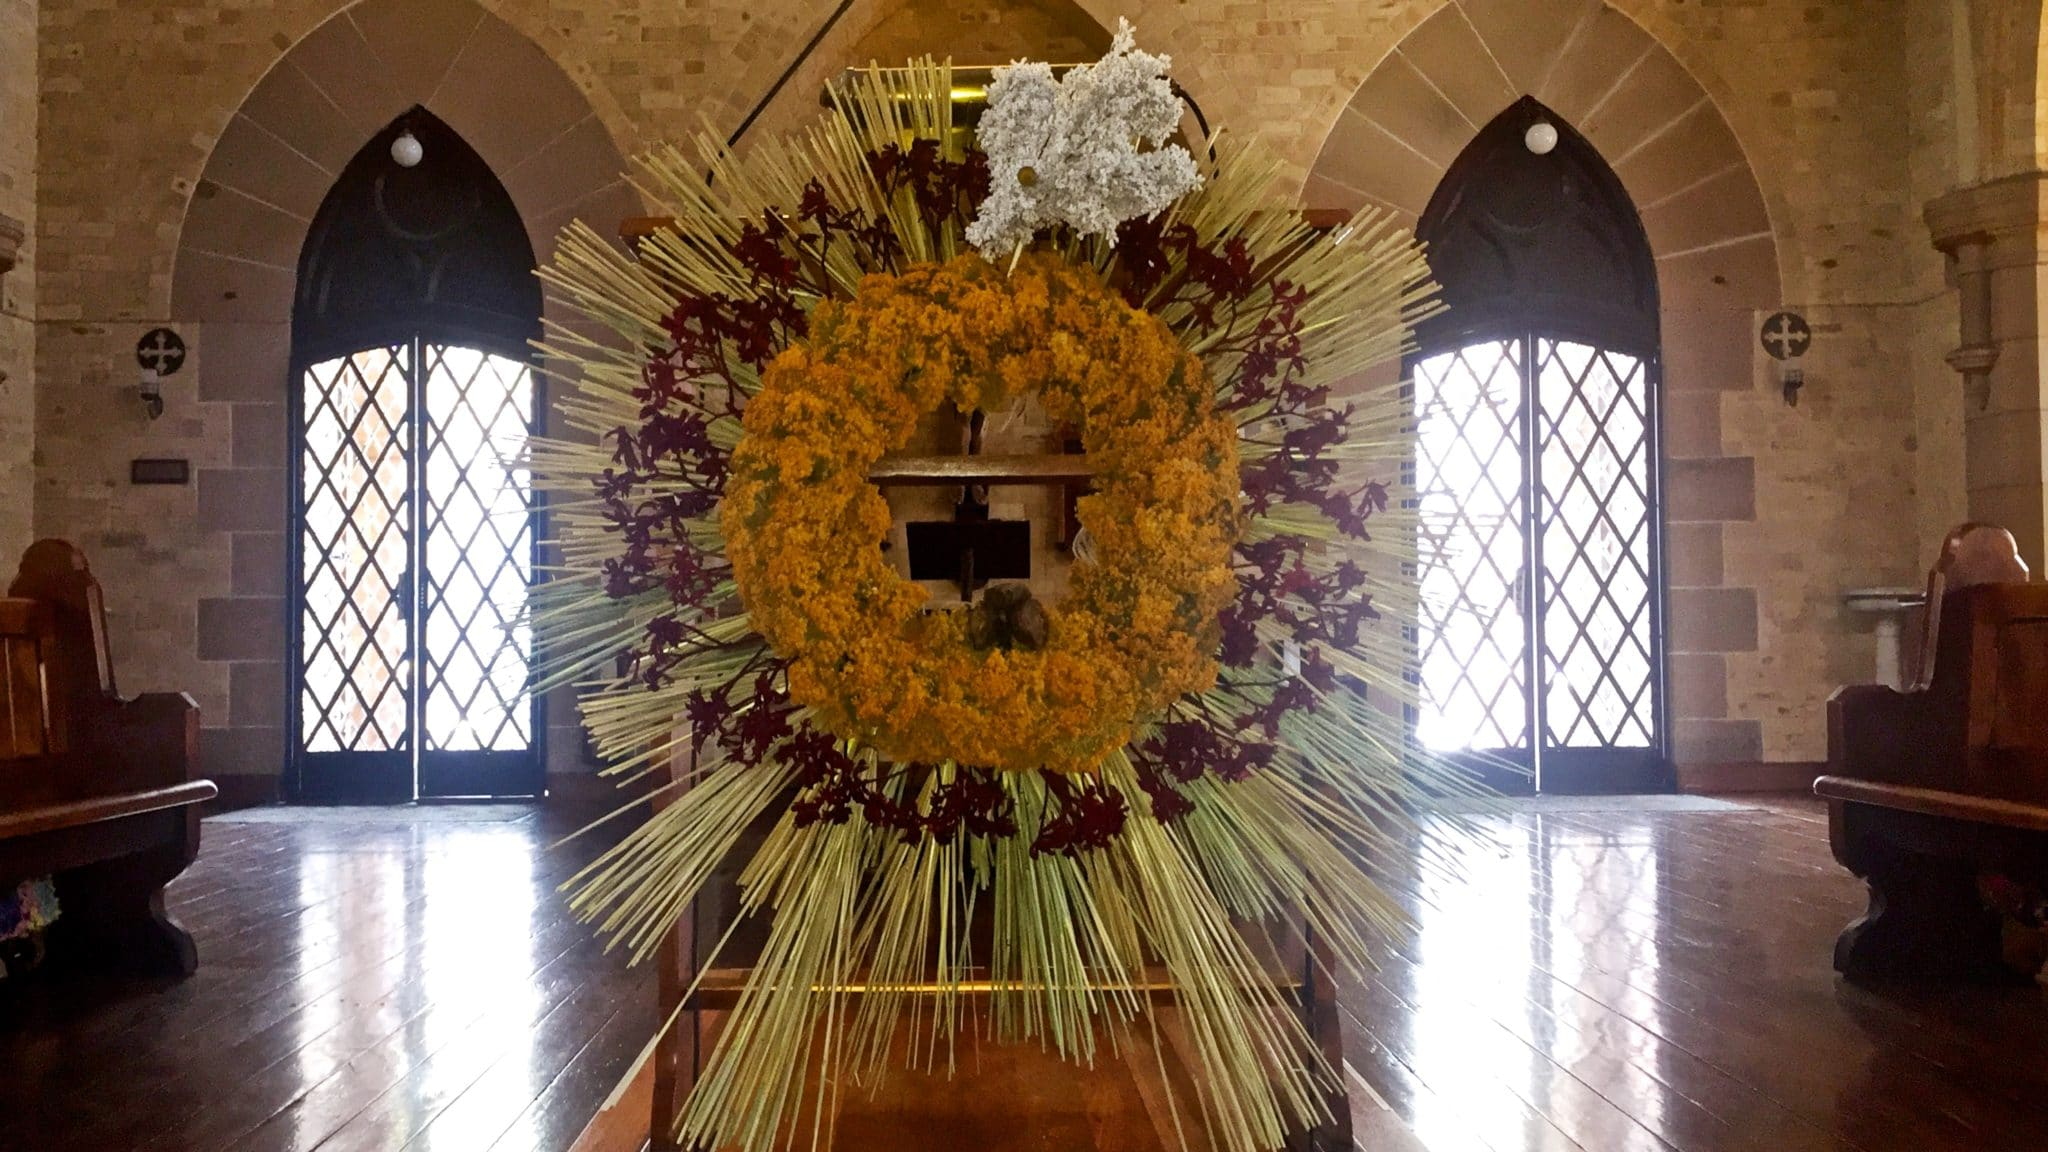 Long-time friend of St Canice's, Gerhard Haas has used WA wildflowers to craft a special tribute to the young people being confirmed today. The Holy Spirit in the shape of a dove has been made using white Smoke Bush, with yellow Morrison, red Kangaroo paw, with stalks of wheat as rays of the sun.